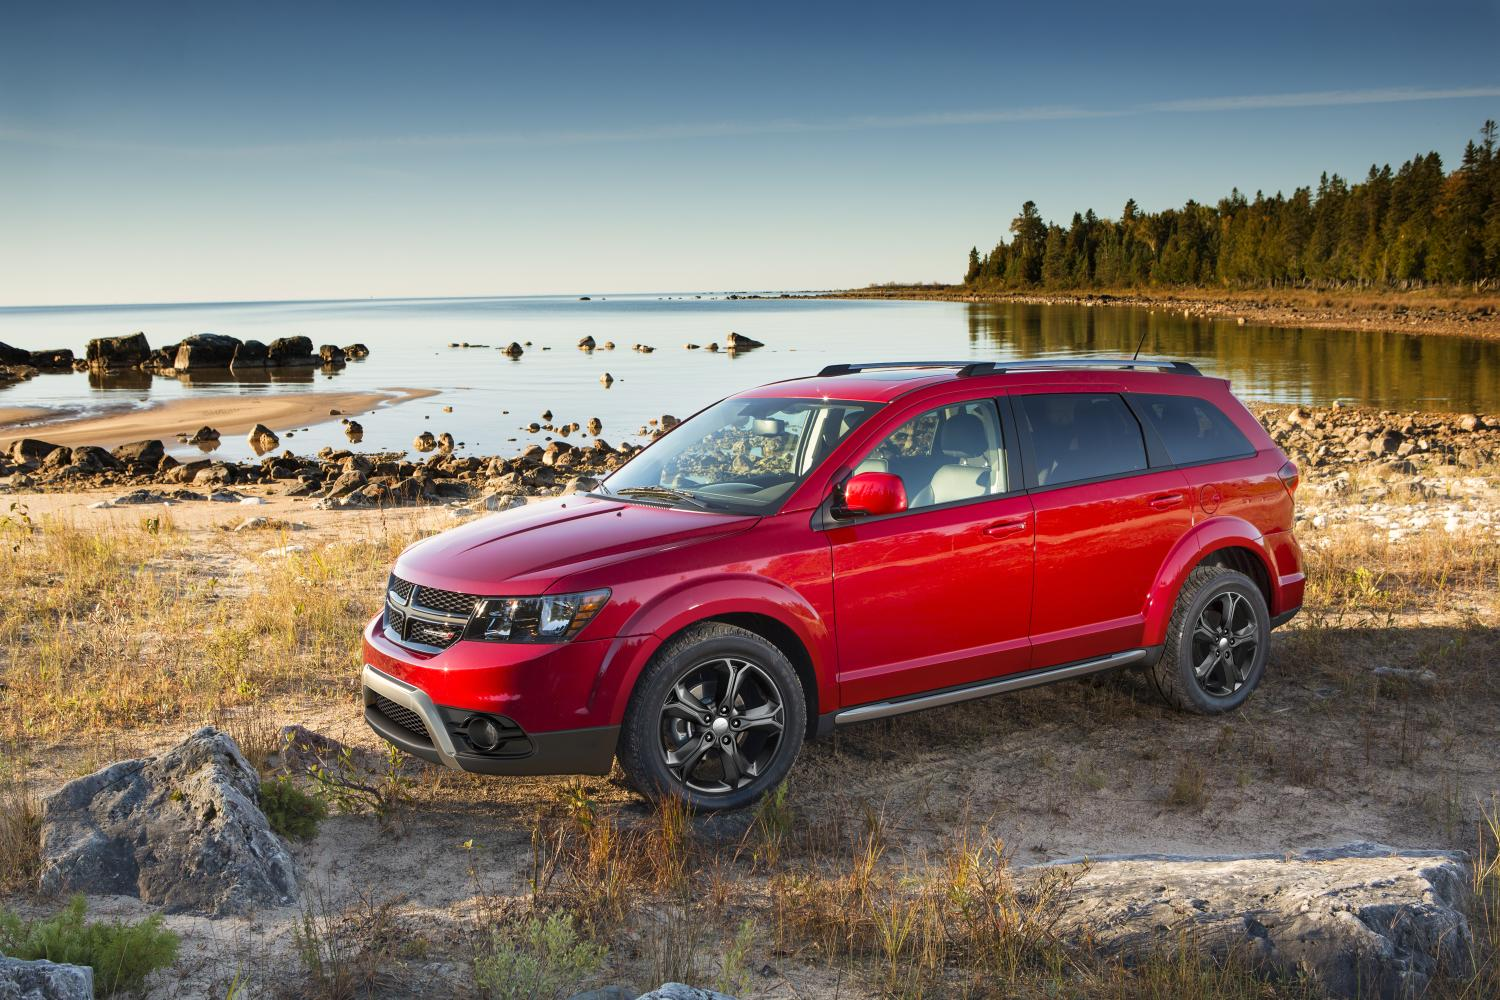 Dodge Journey Crossroad >> 2014 Dodge Journey Crossroad Unveiled Ahead of Chicago Debut - autoevolution